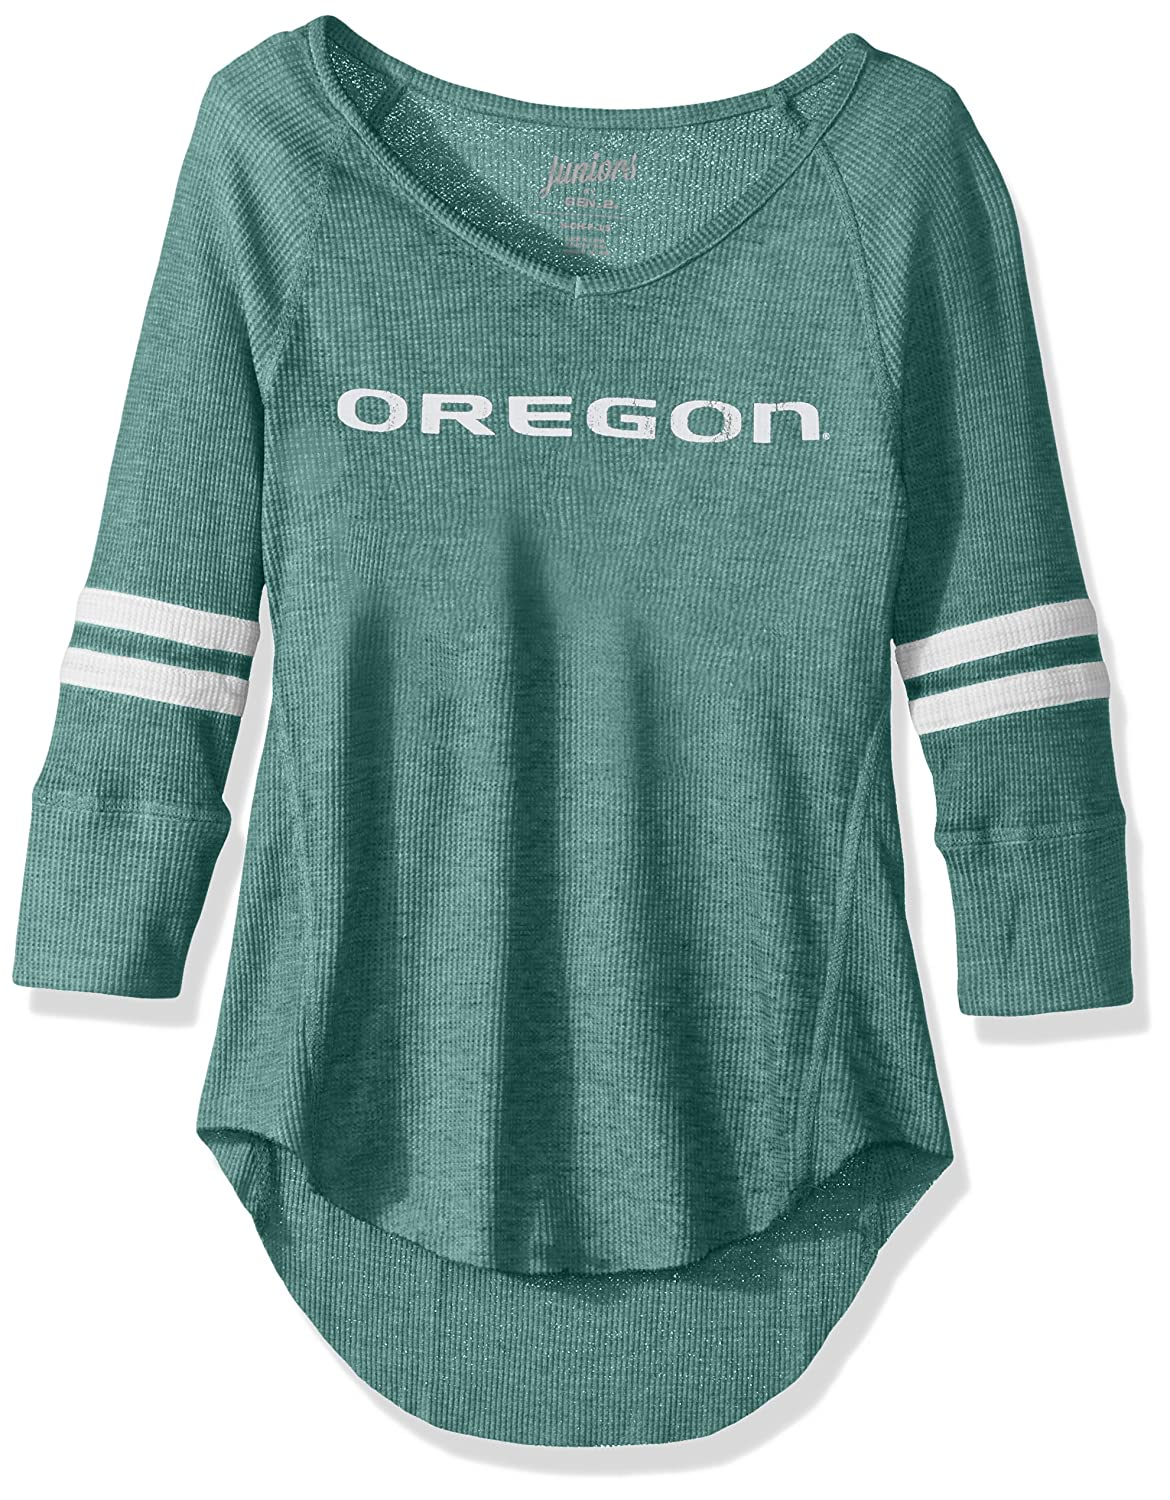 NCAA Oregon Ducks Juniors Outerstuff Relaxed 3//4 Raglan Thermal Top Medium 7-9 Team Color